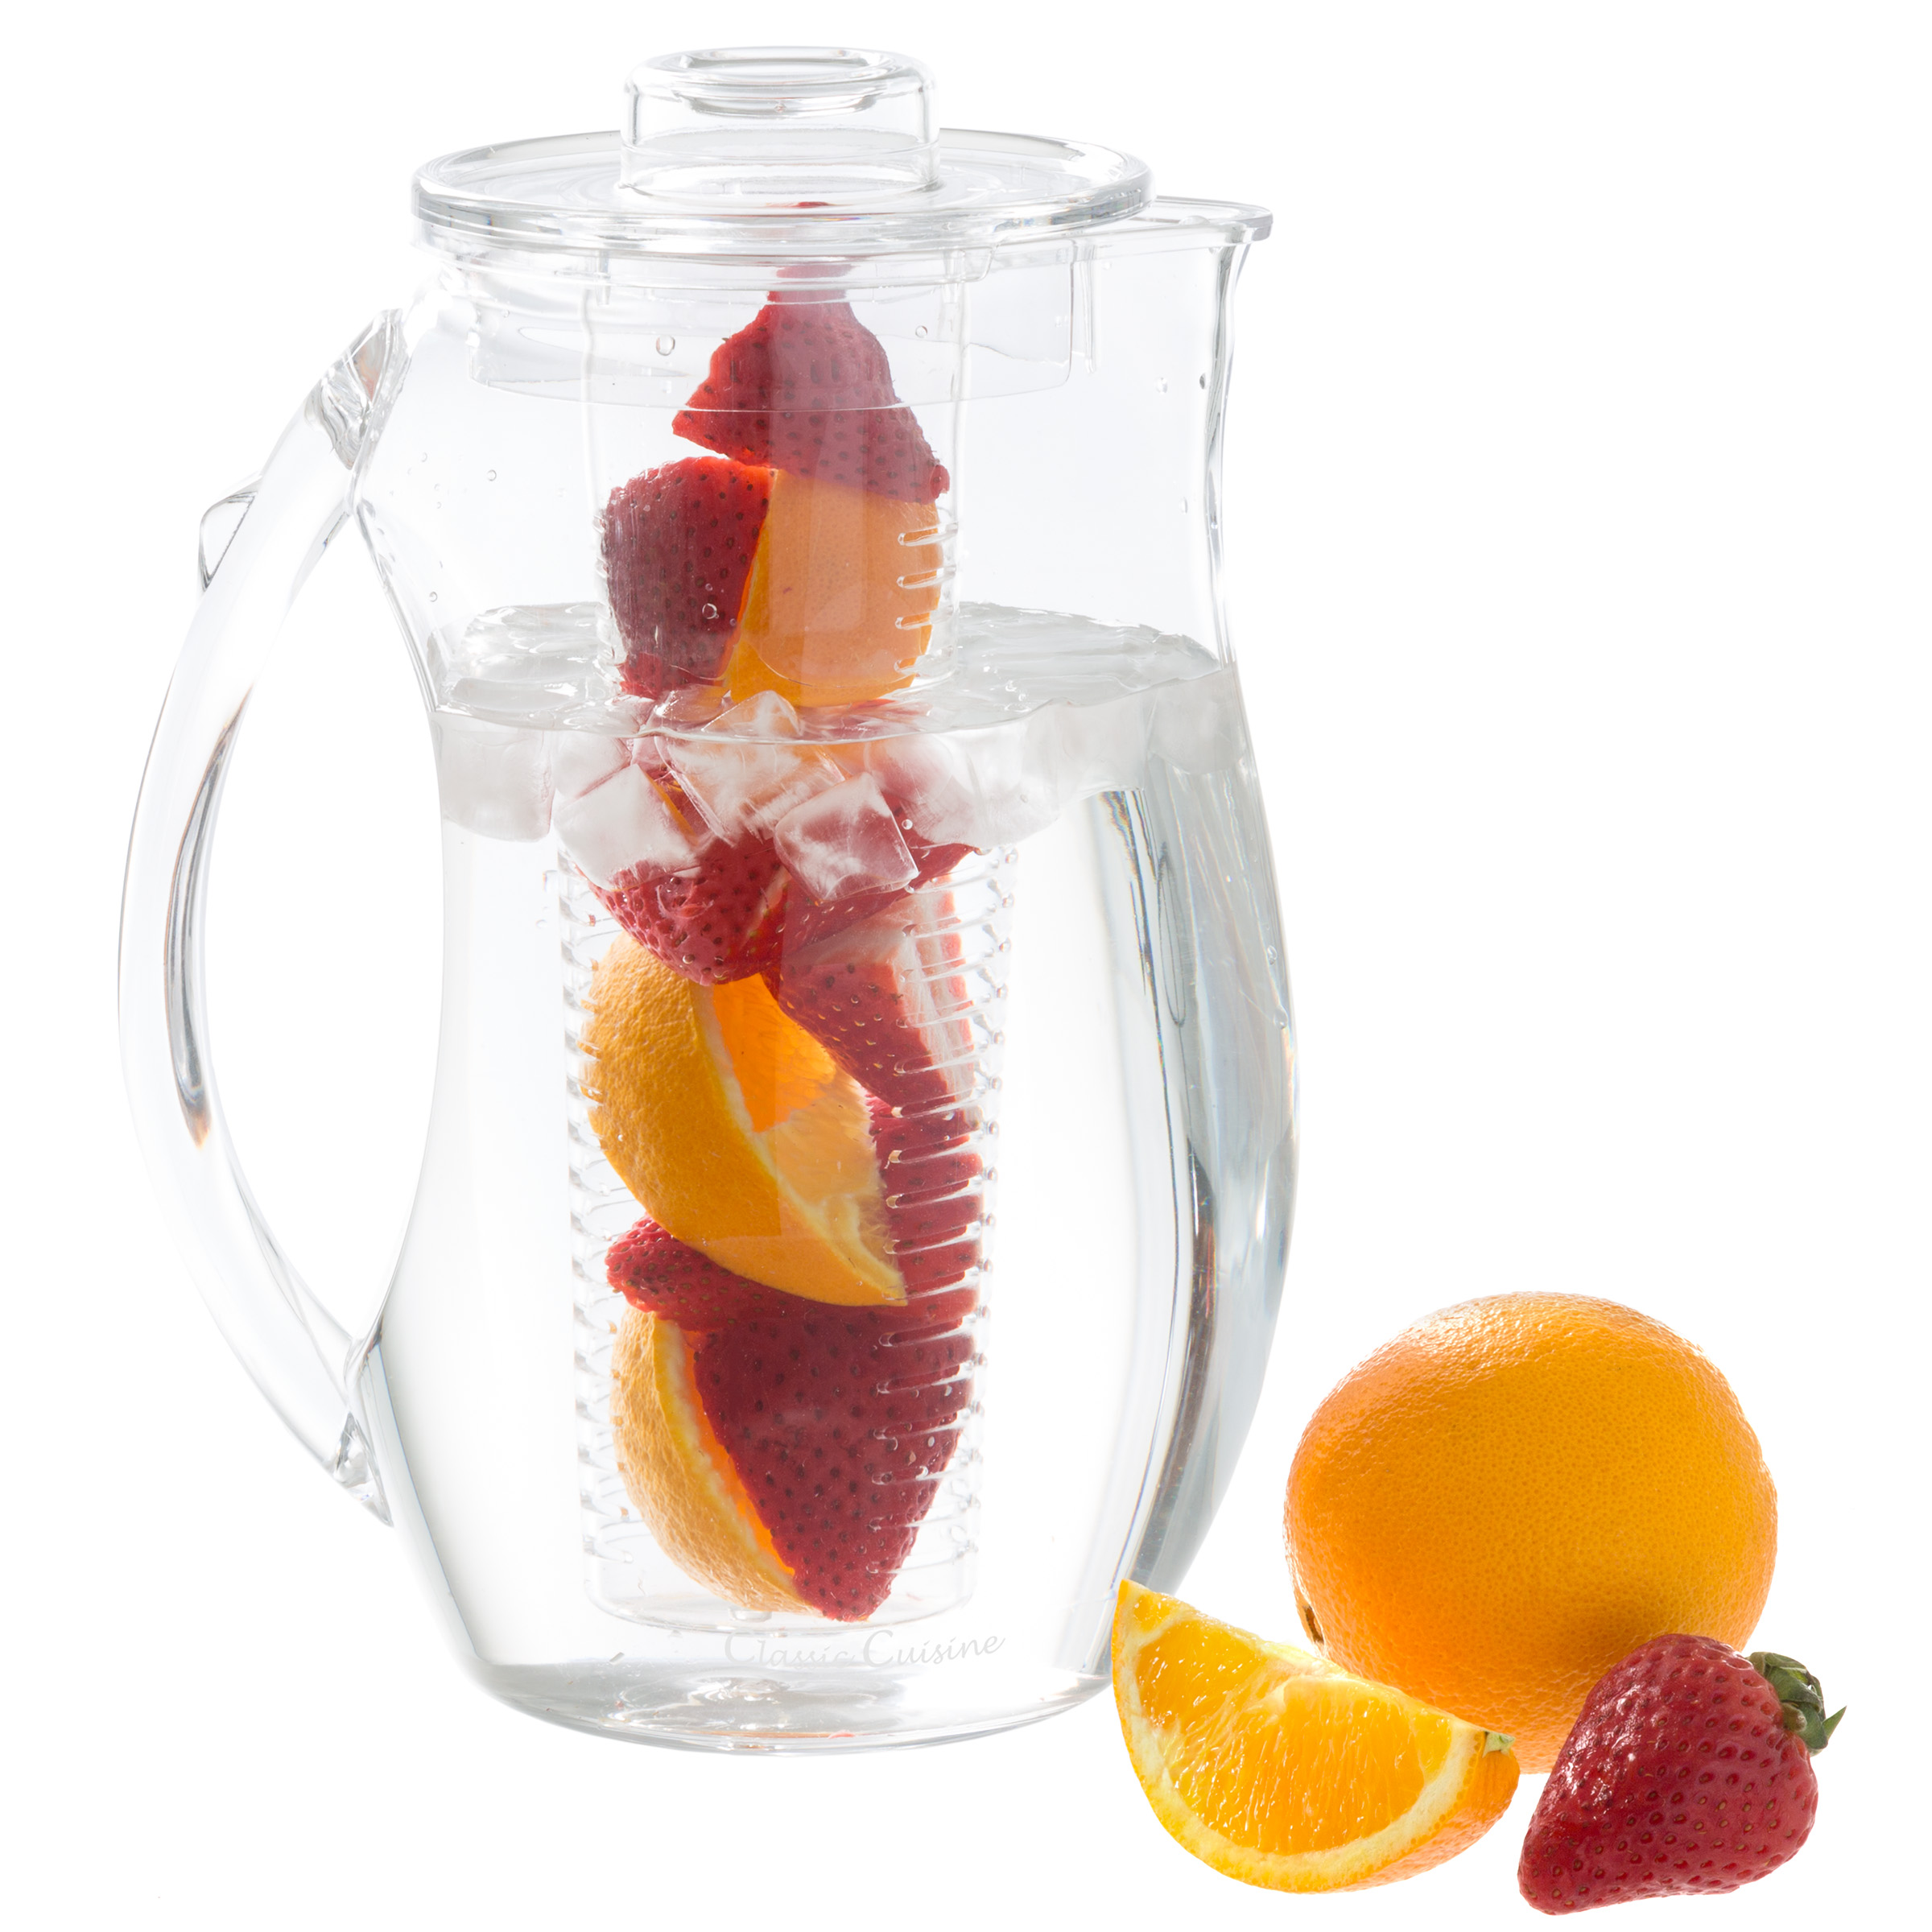 Infusion Pitcher- 96oz. Acrylic Pitcher with Removable Fruit Infusion Tube for Flavored Water, Juice, Lemonade, Punch and More by Classic Cuisine